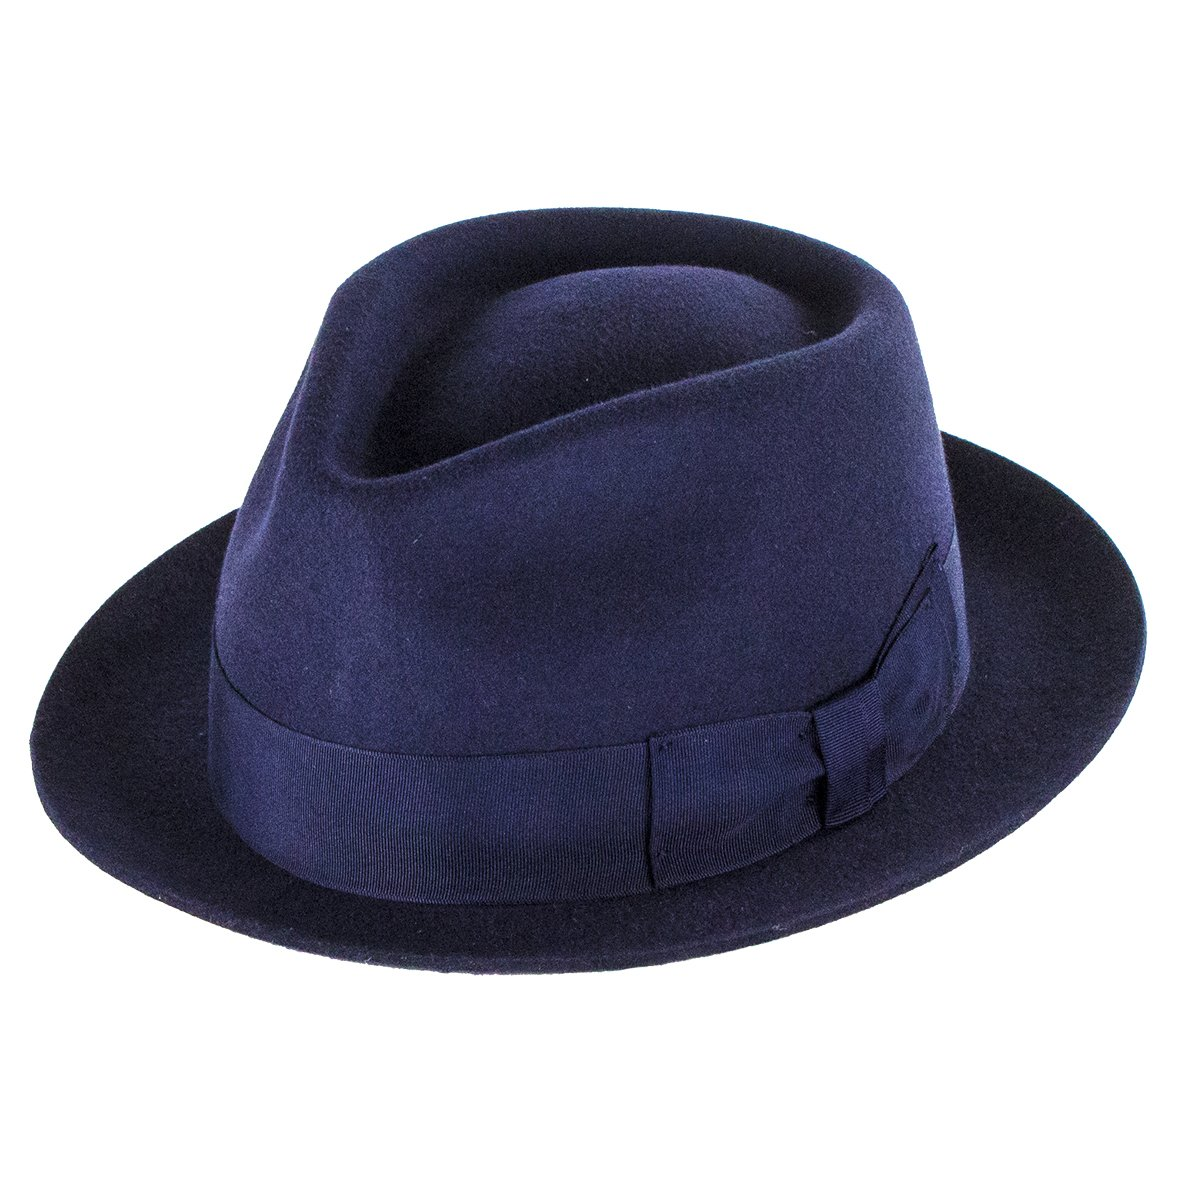 Dentons Hats Manhattan Wool Felt Trilby - Navy